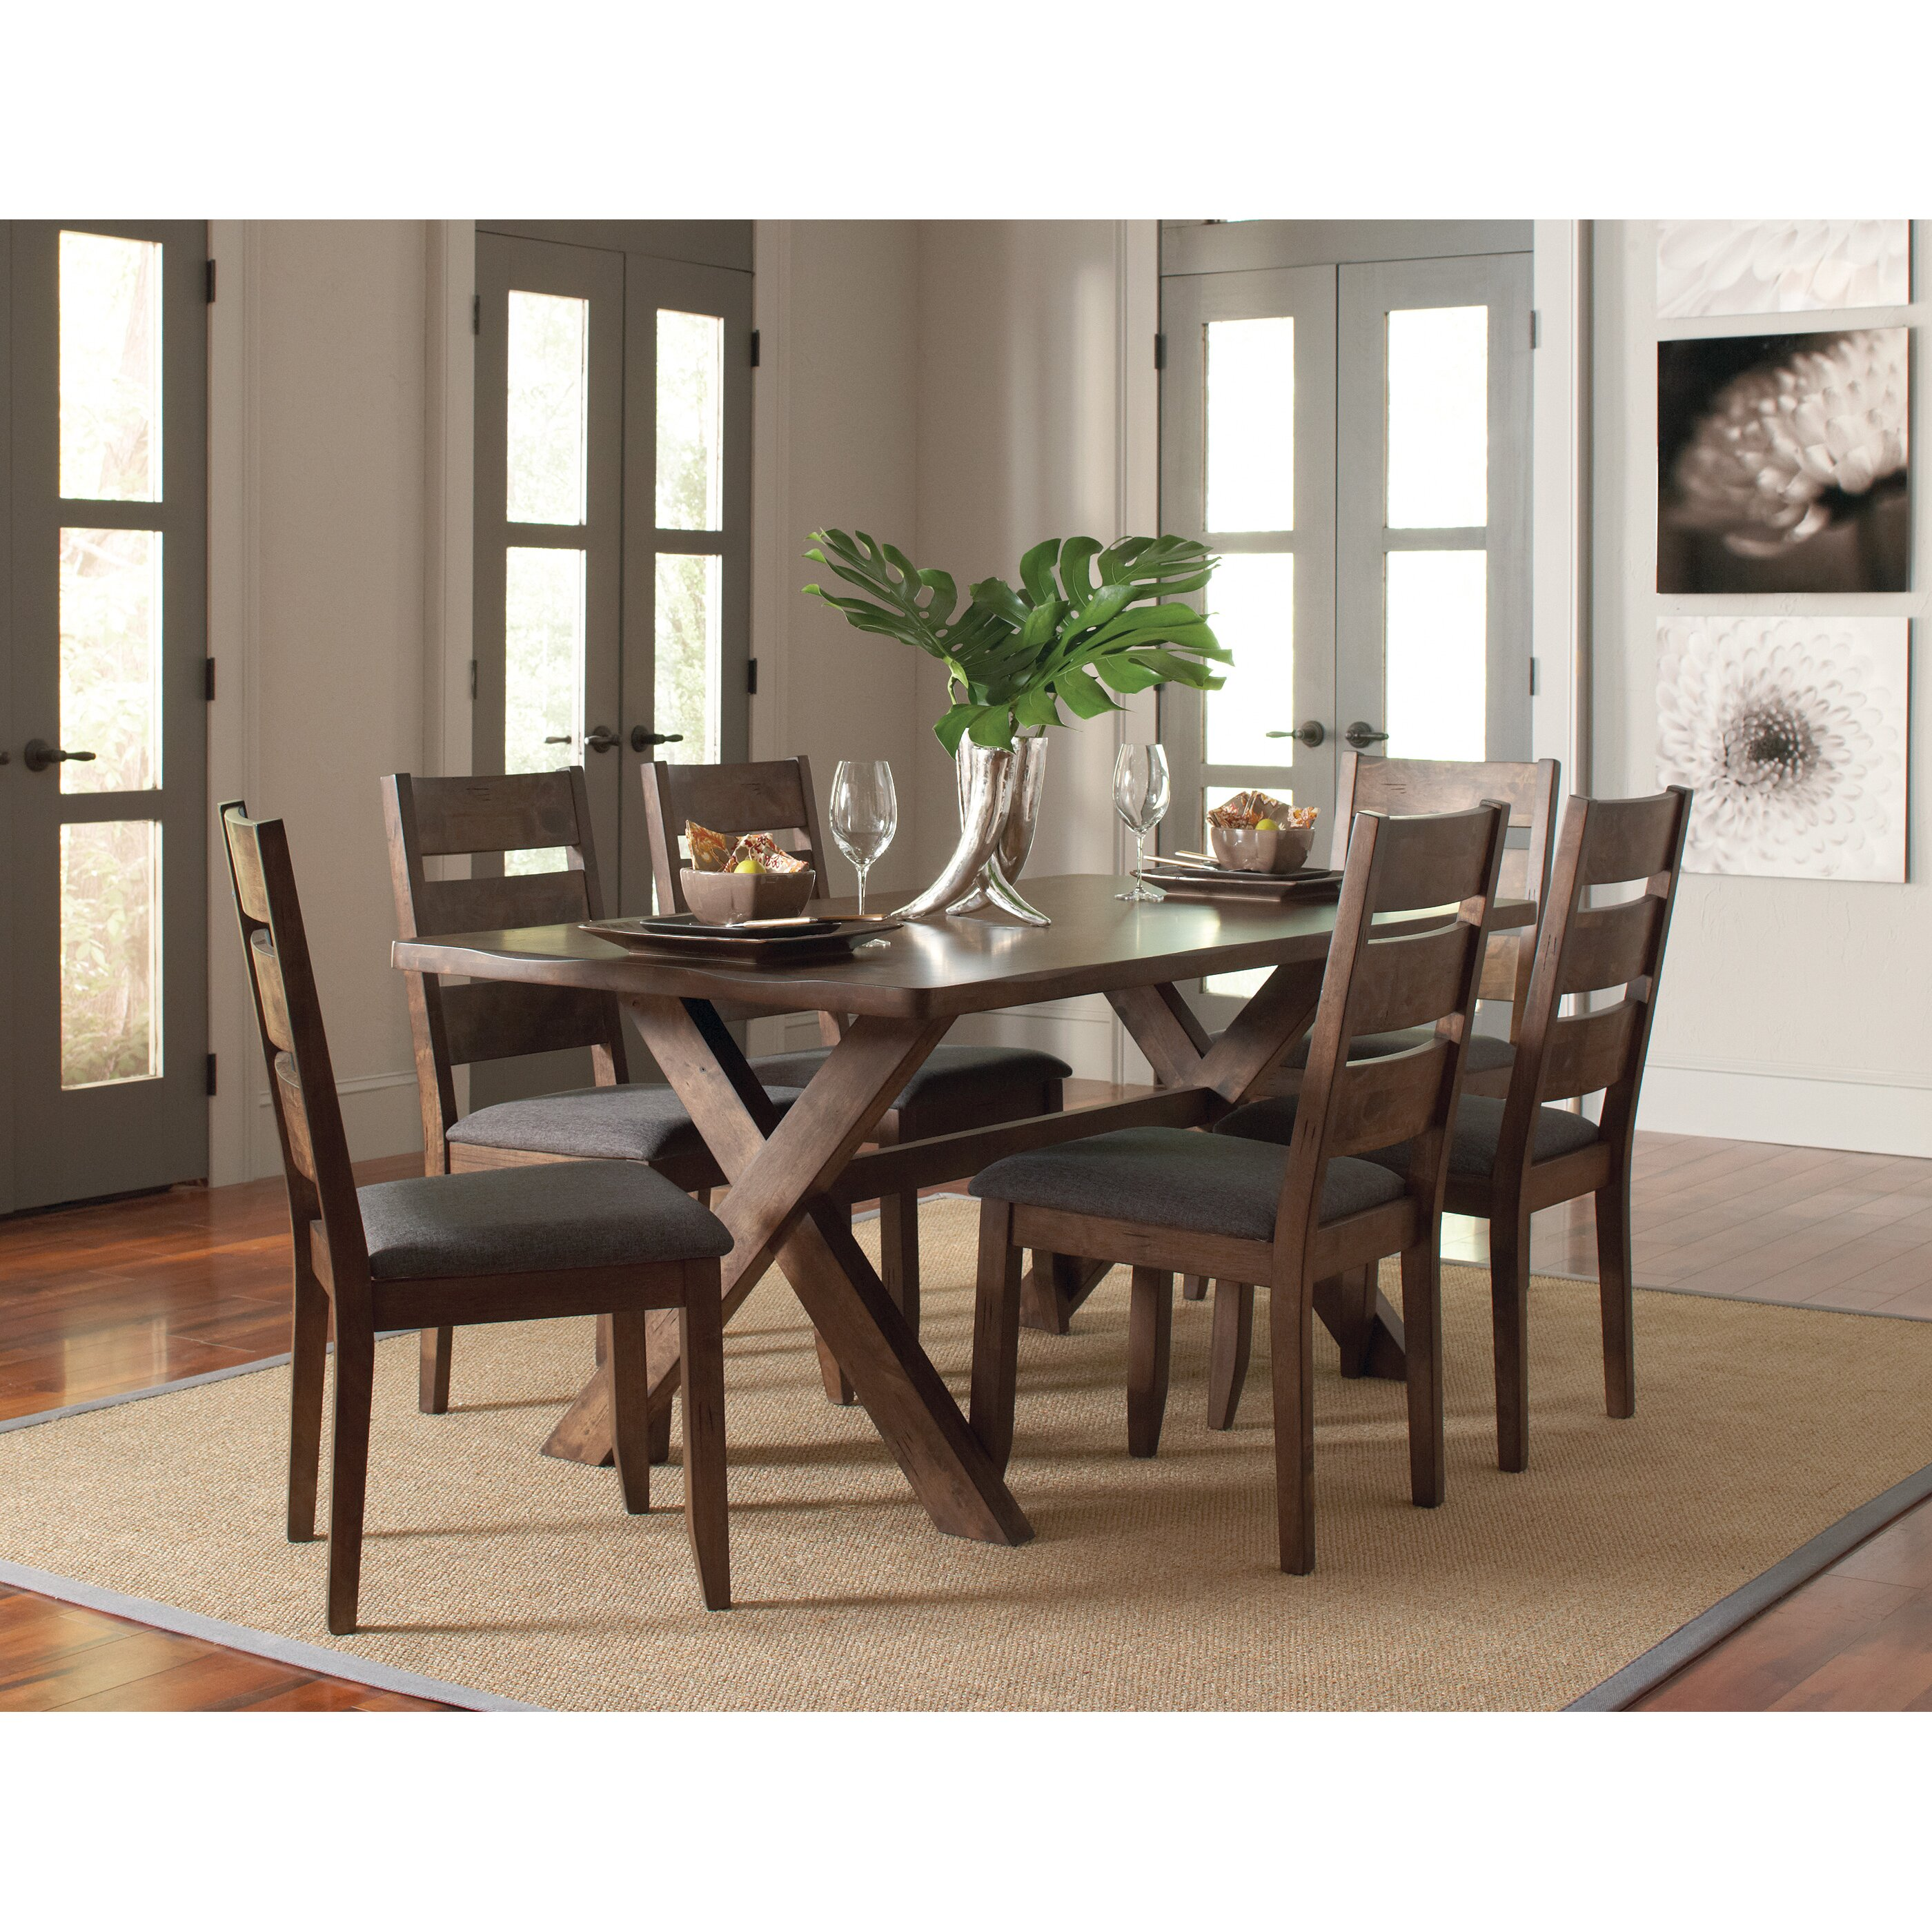 Wildon home allston dining table for Wildon home dining